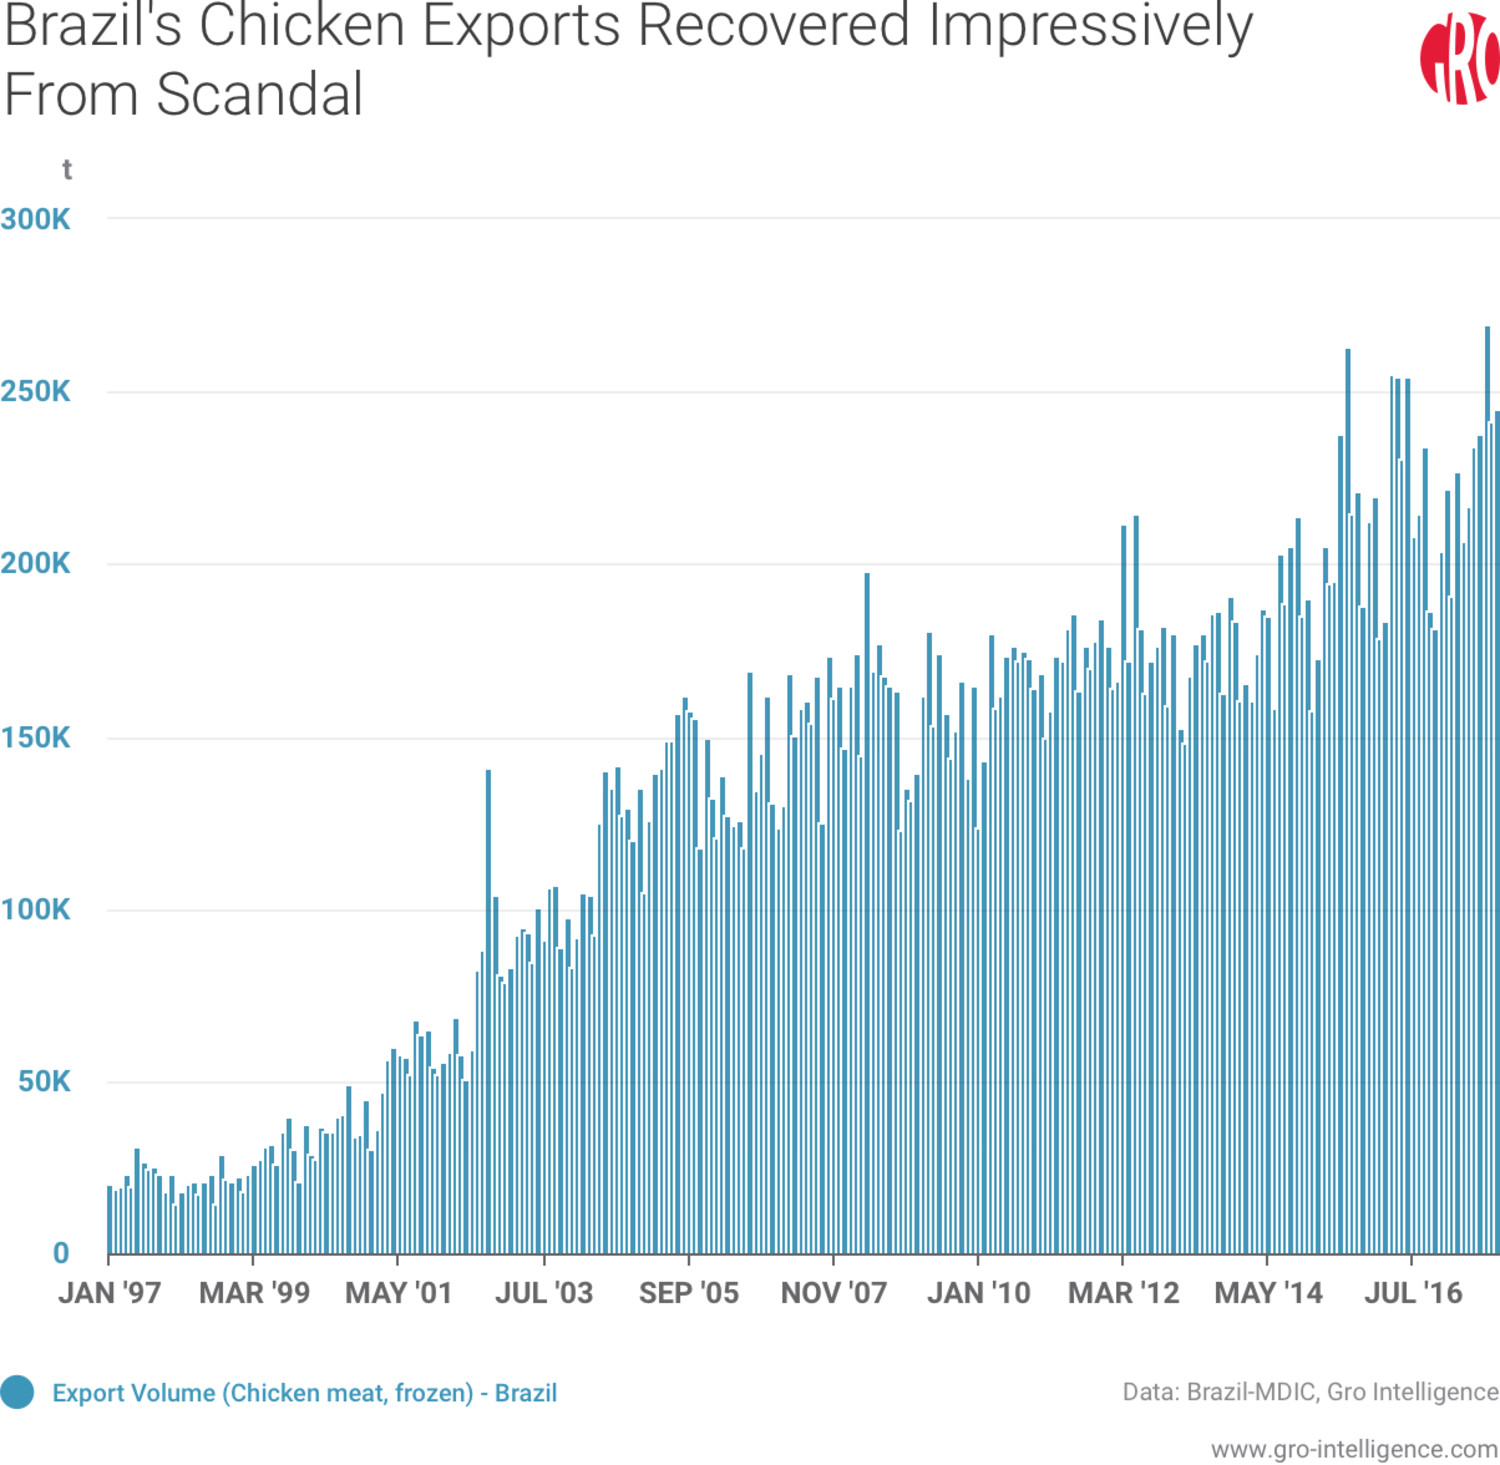 Brazil's Chicken Exports Recovered Impressively From Scandal